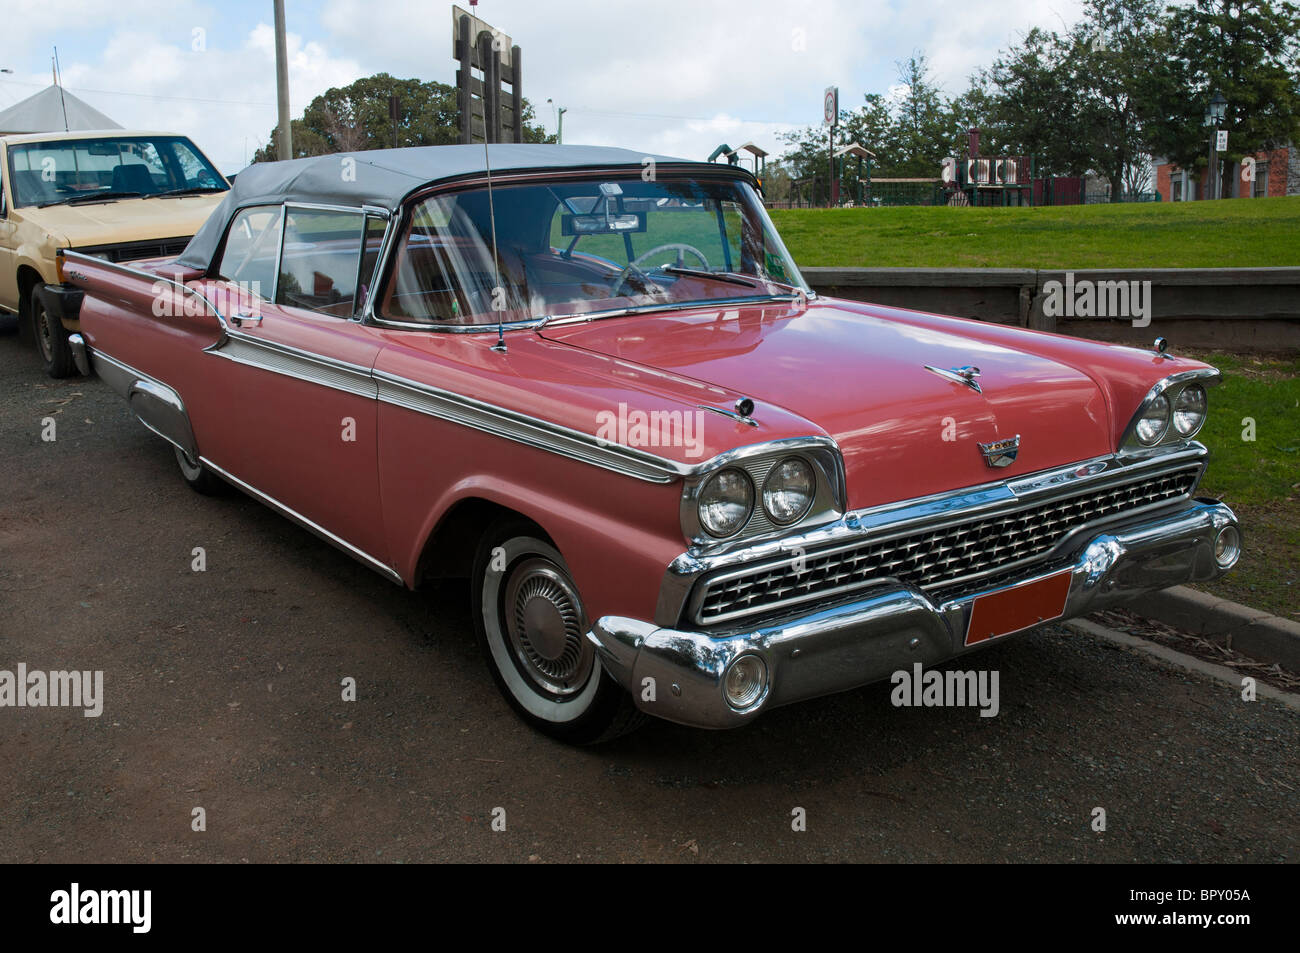 Two door Ford Galaxie convertible - Stock Image